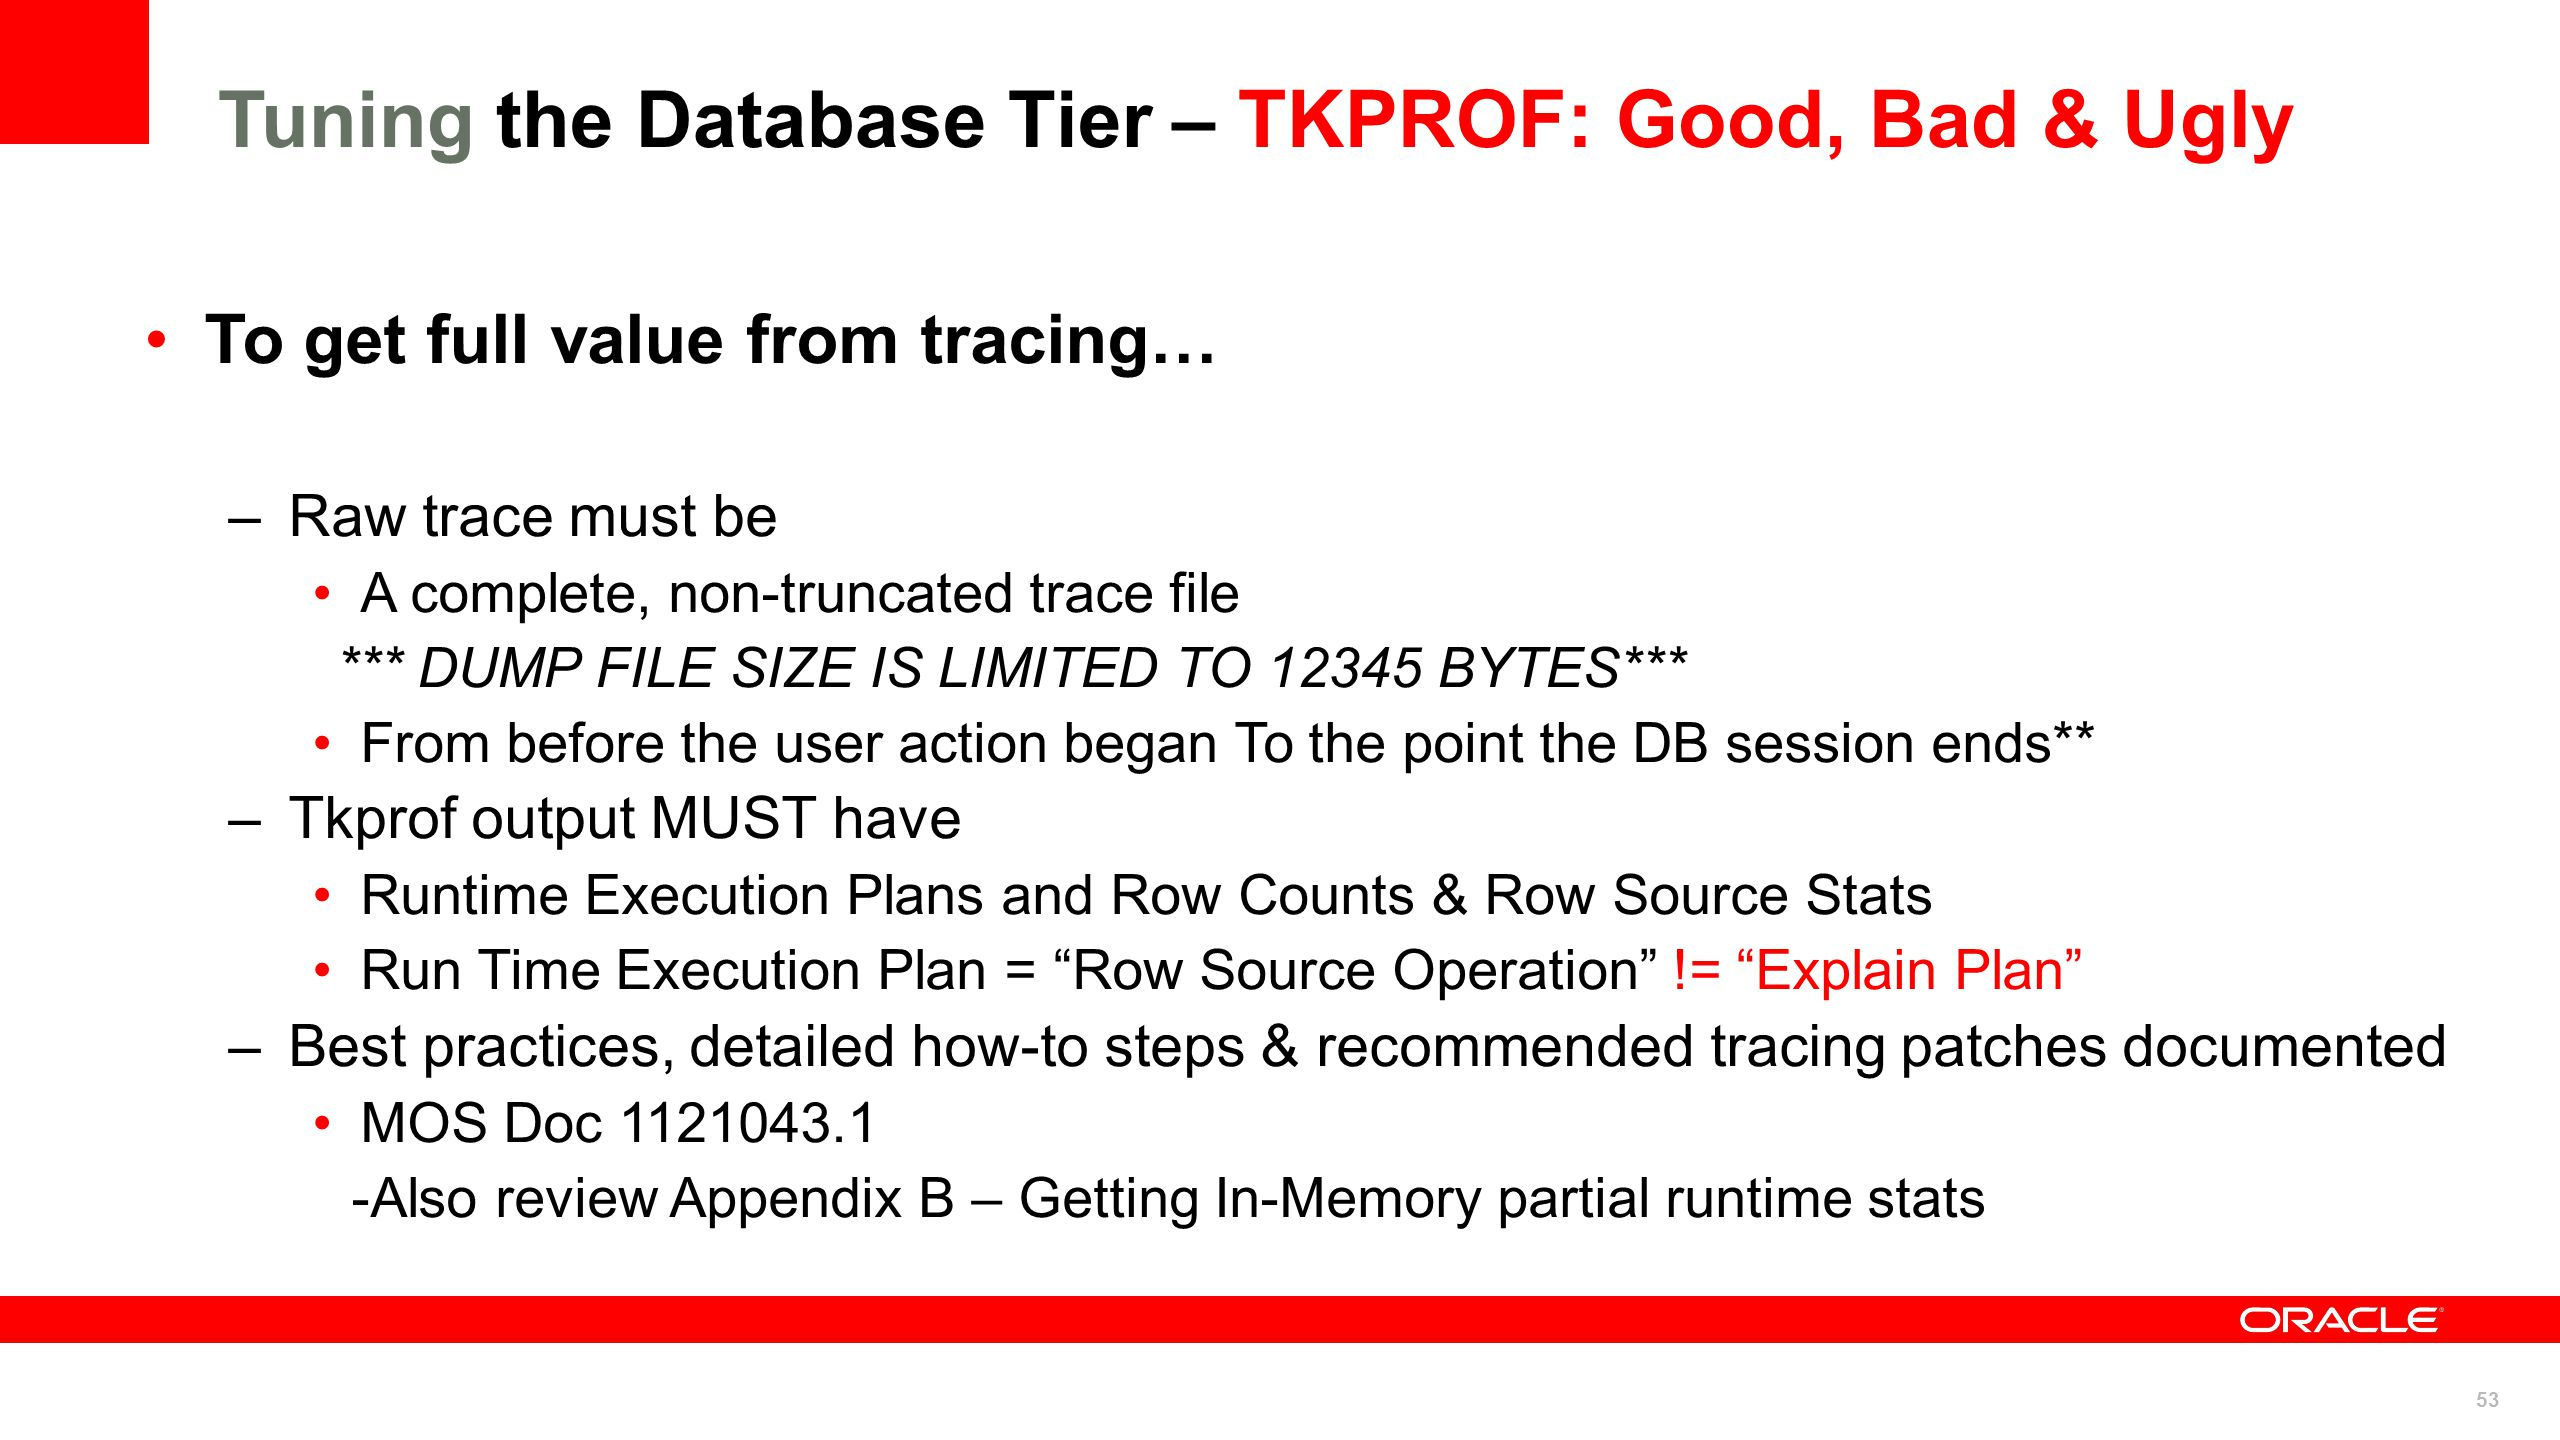 53 To get full value from tracing… –Raw trace must be A complete, non-truncated trace file *** DUMP FILE SIZE IS LIMITED TO 12345 BYTES*** From before